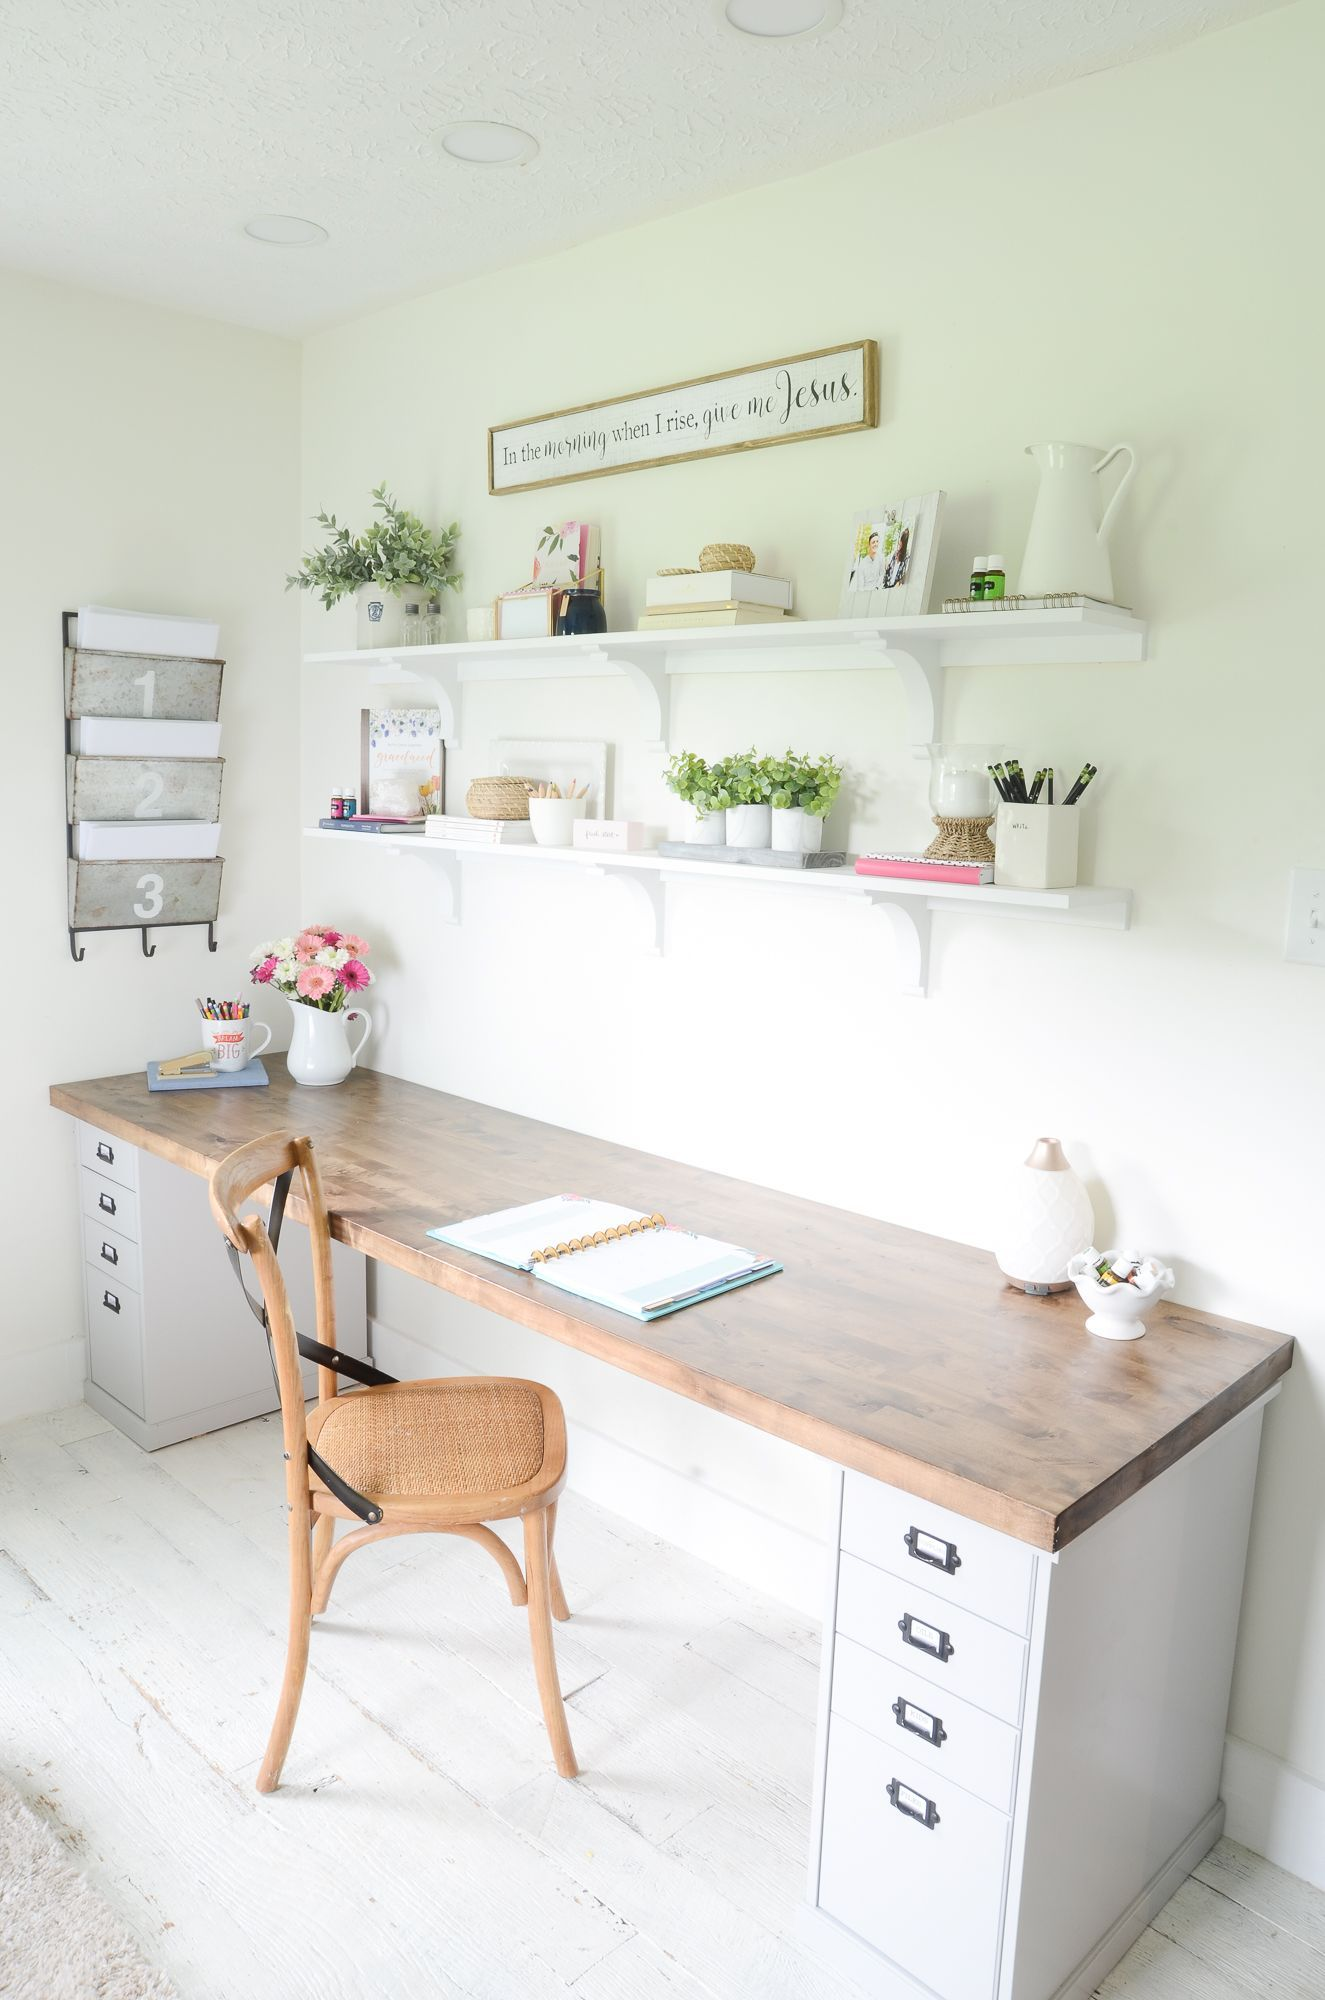 Great Home Office Ideas To Set The Creative Juices Flowing Home Office Ideas Butcher Block Desk Home Office Desks Guest Room Office